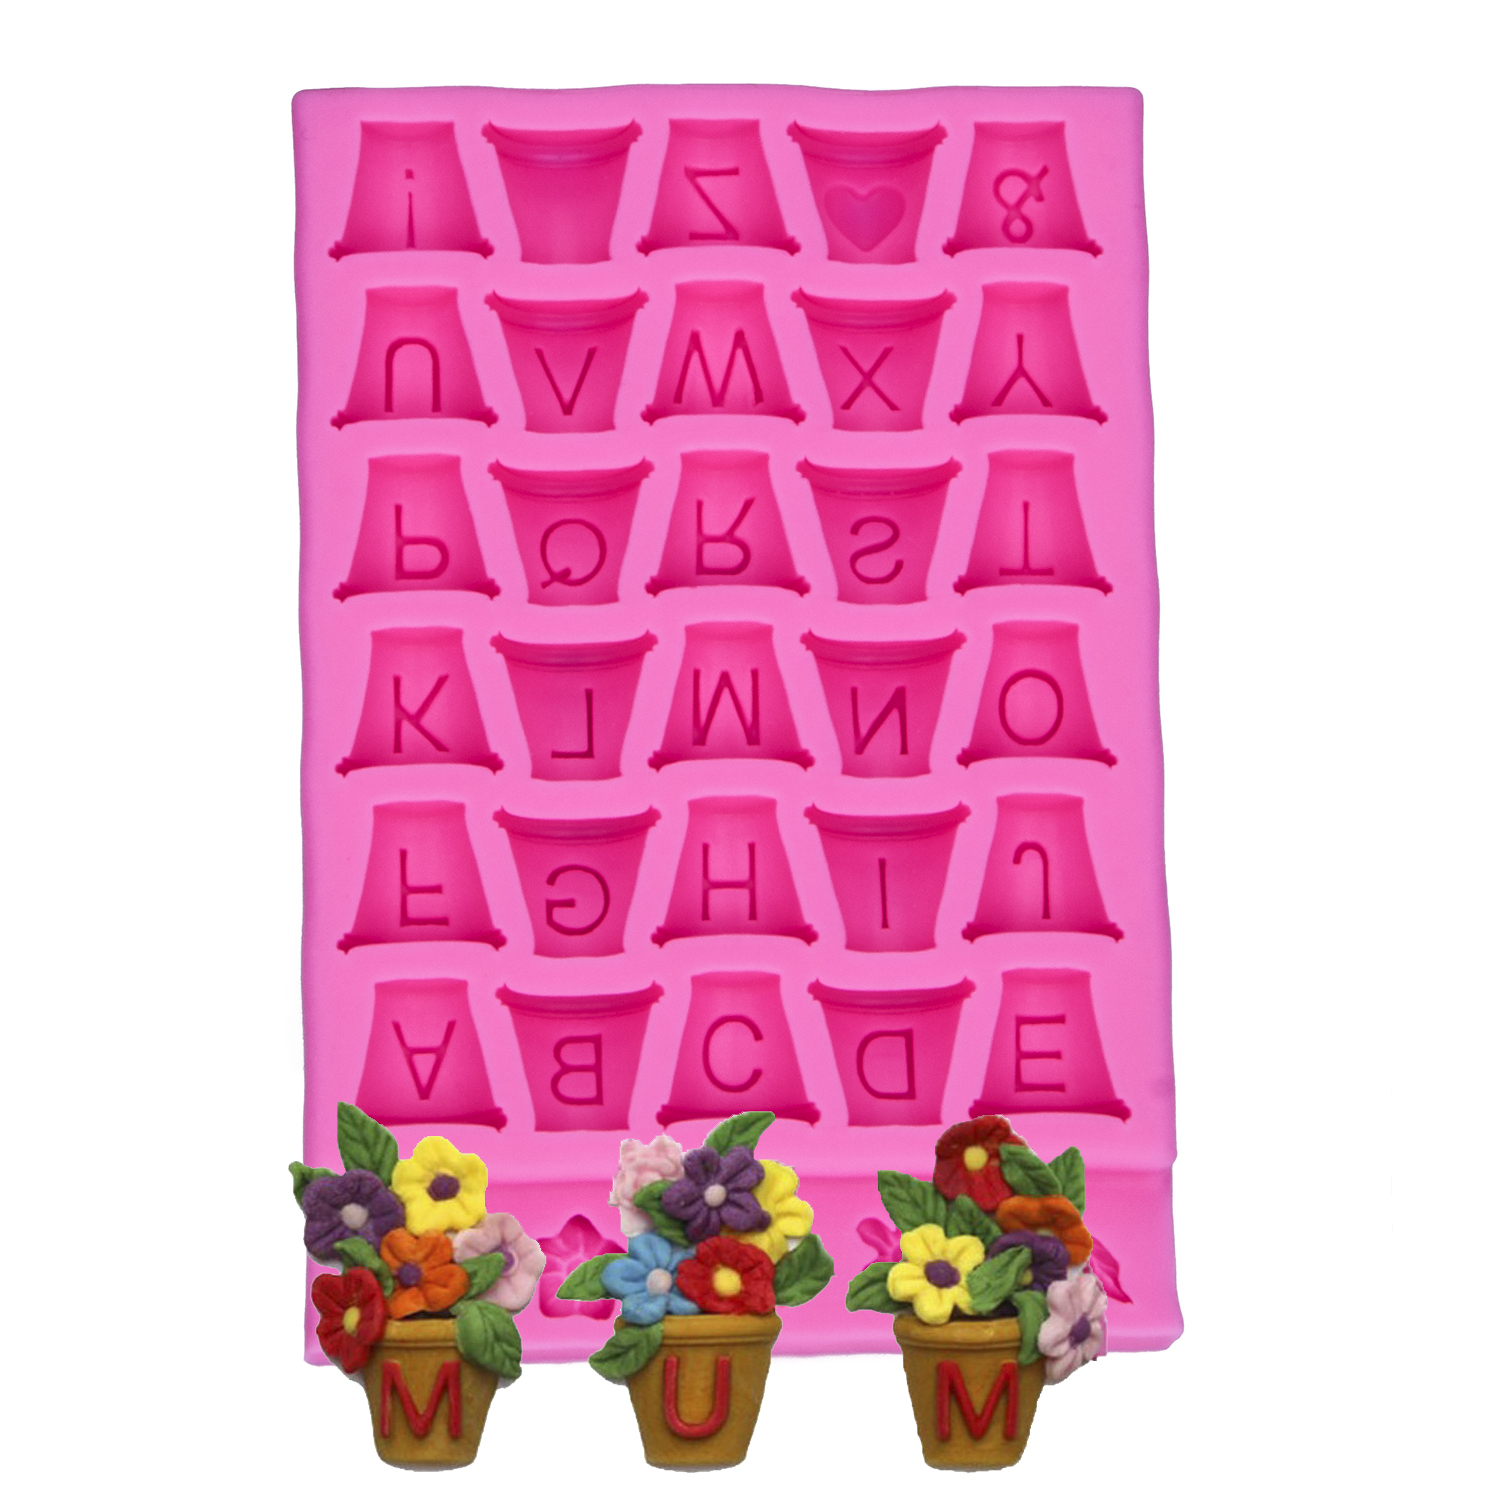 26 letter flowerpot 3D Reverse sugar molding Food Grade silicone mould polymer clay molds chocolate cake decoration tools F-1172